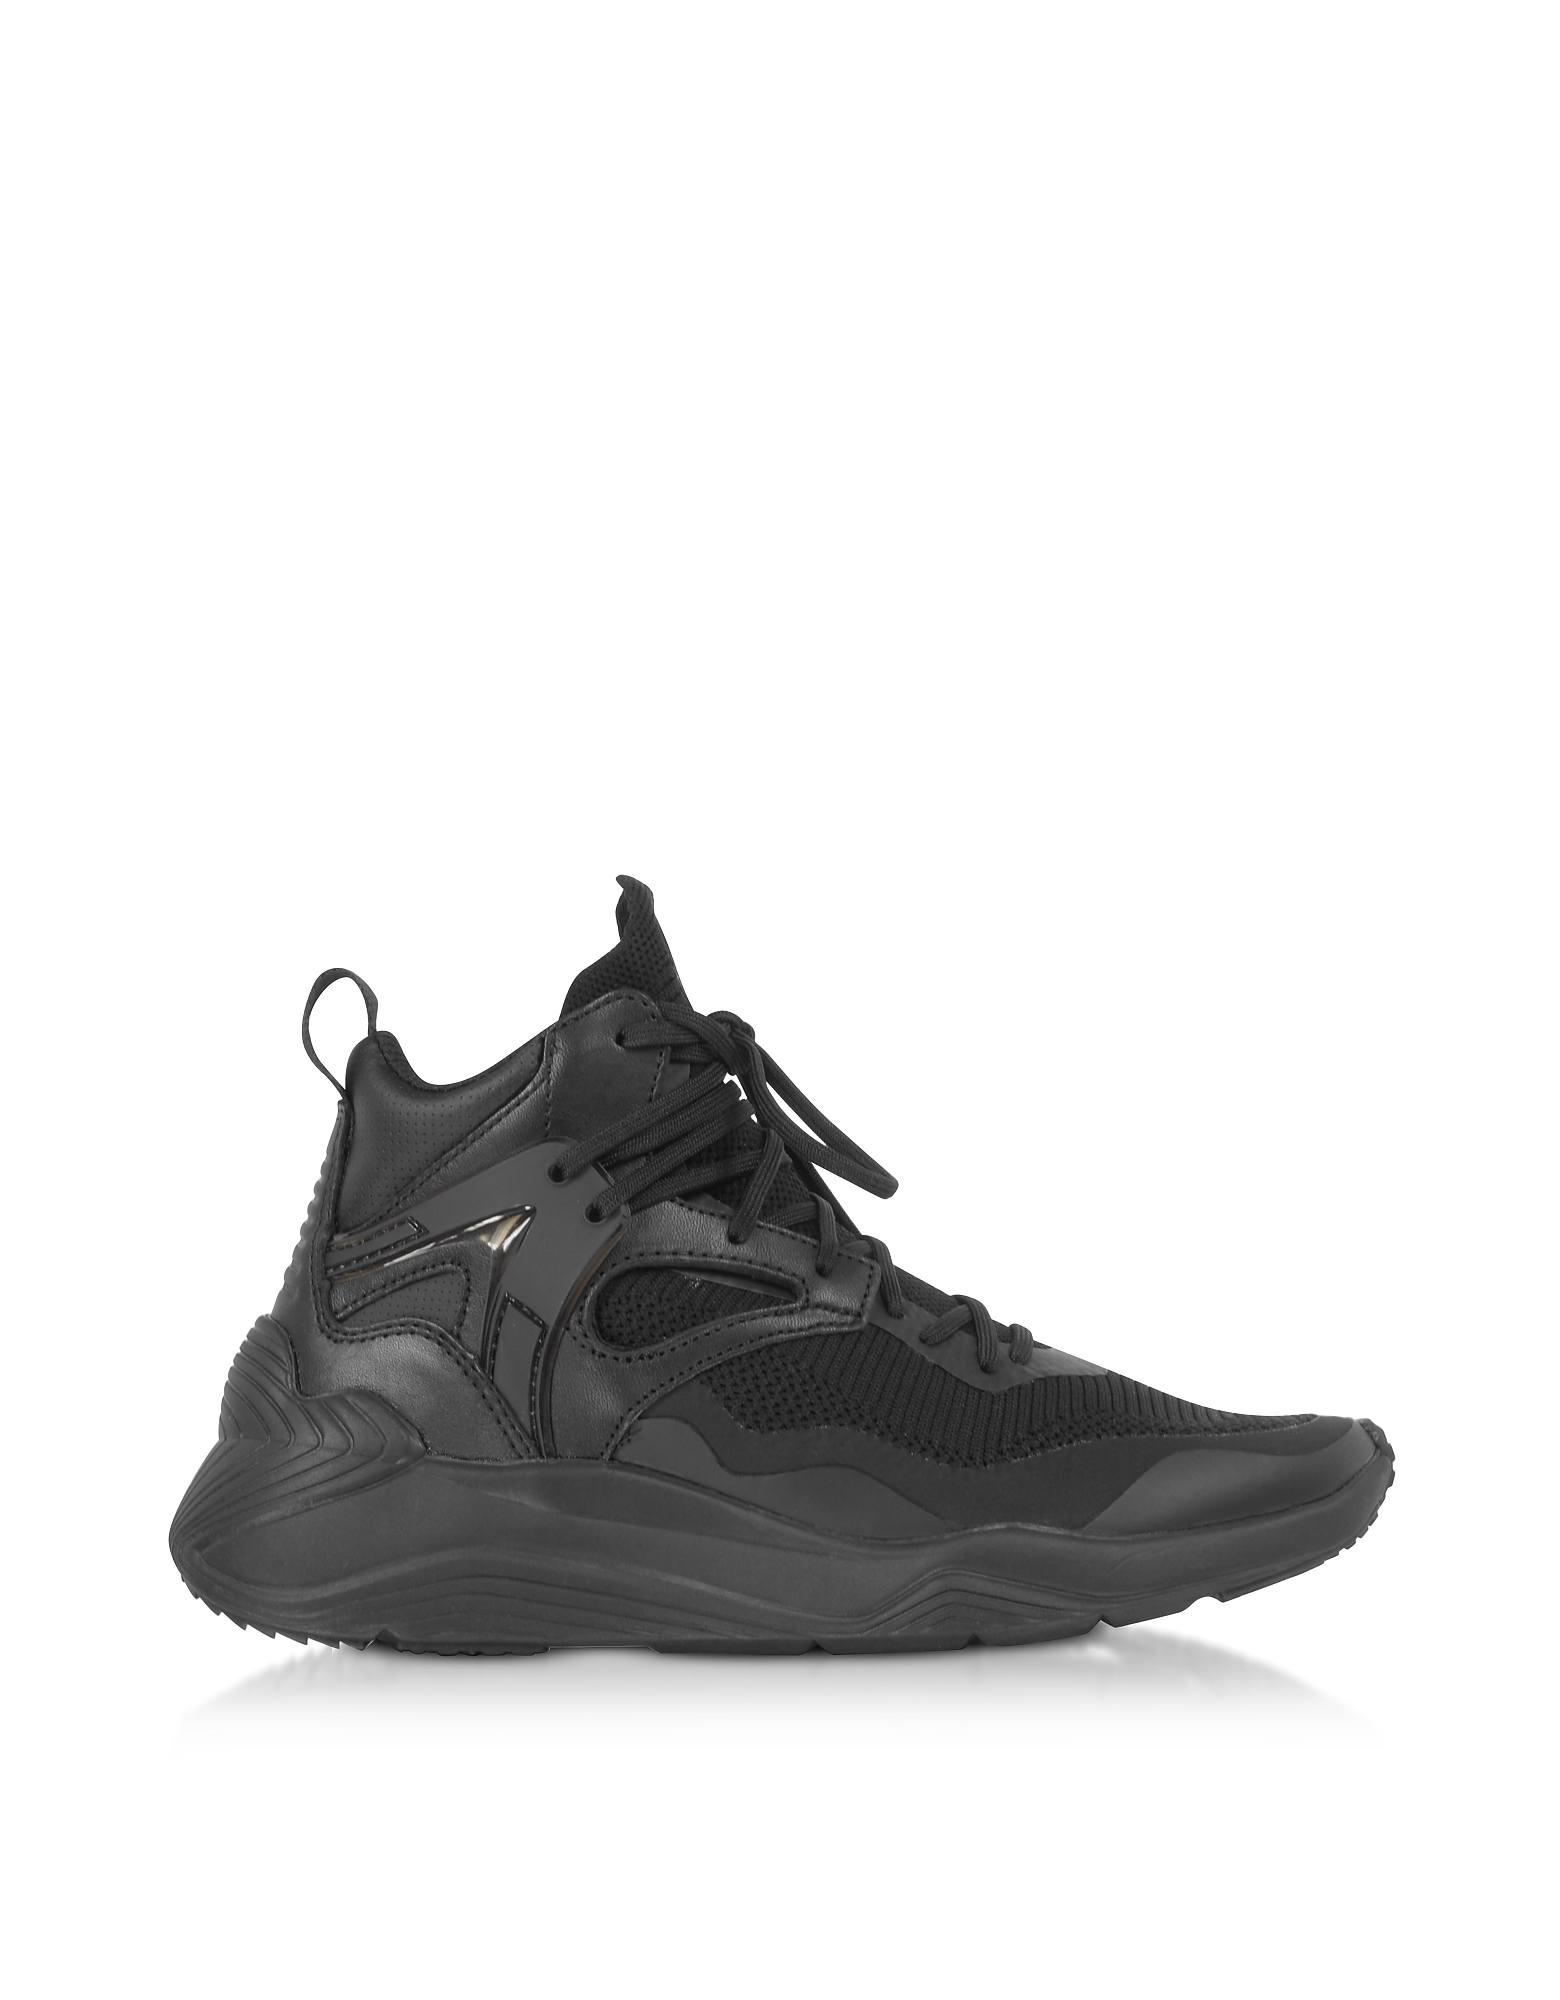 McQ Alexander McQueen Designer Shoes, Sodai Black Calf Leather and Fabric Women's Sneakers